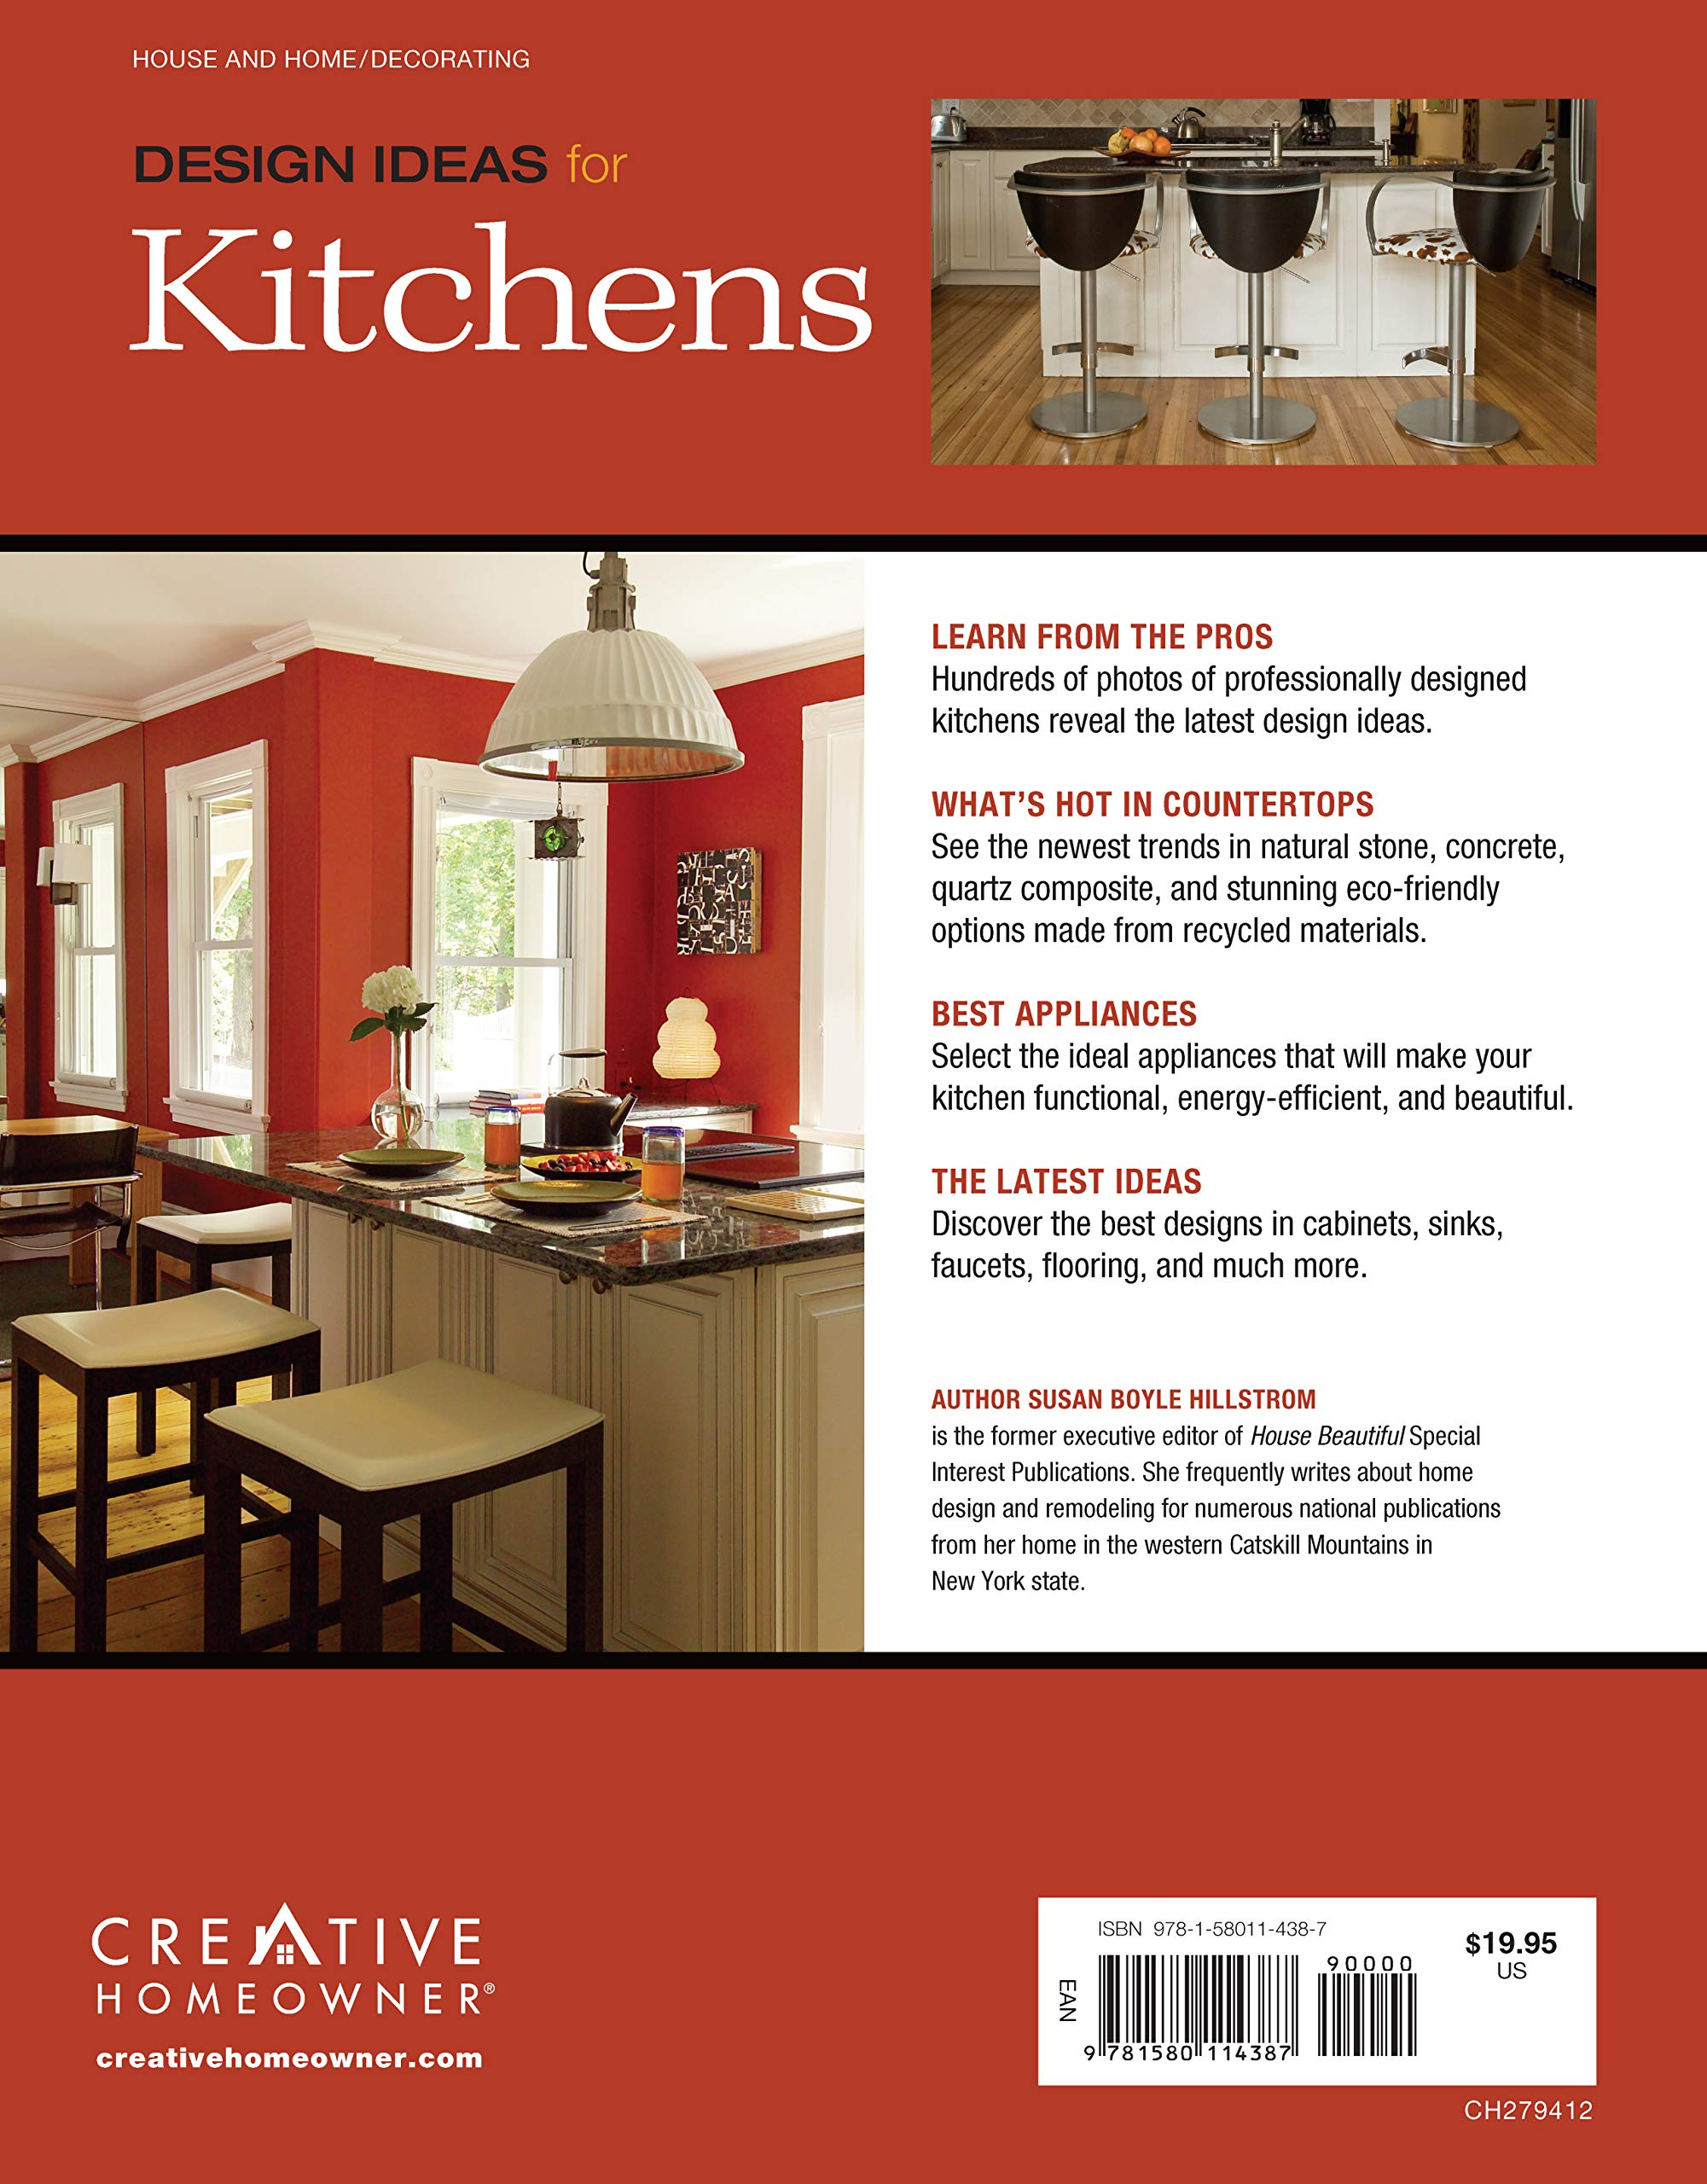 Design Ideas For Kitchens 2nd Edition Home Decorating Ms Susan